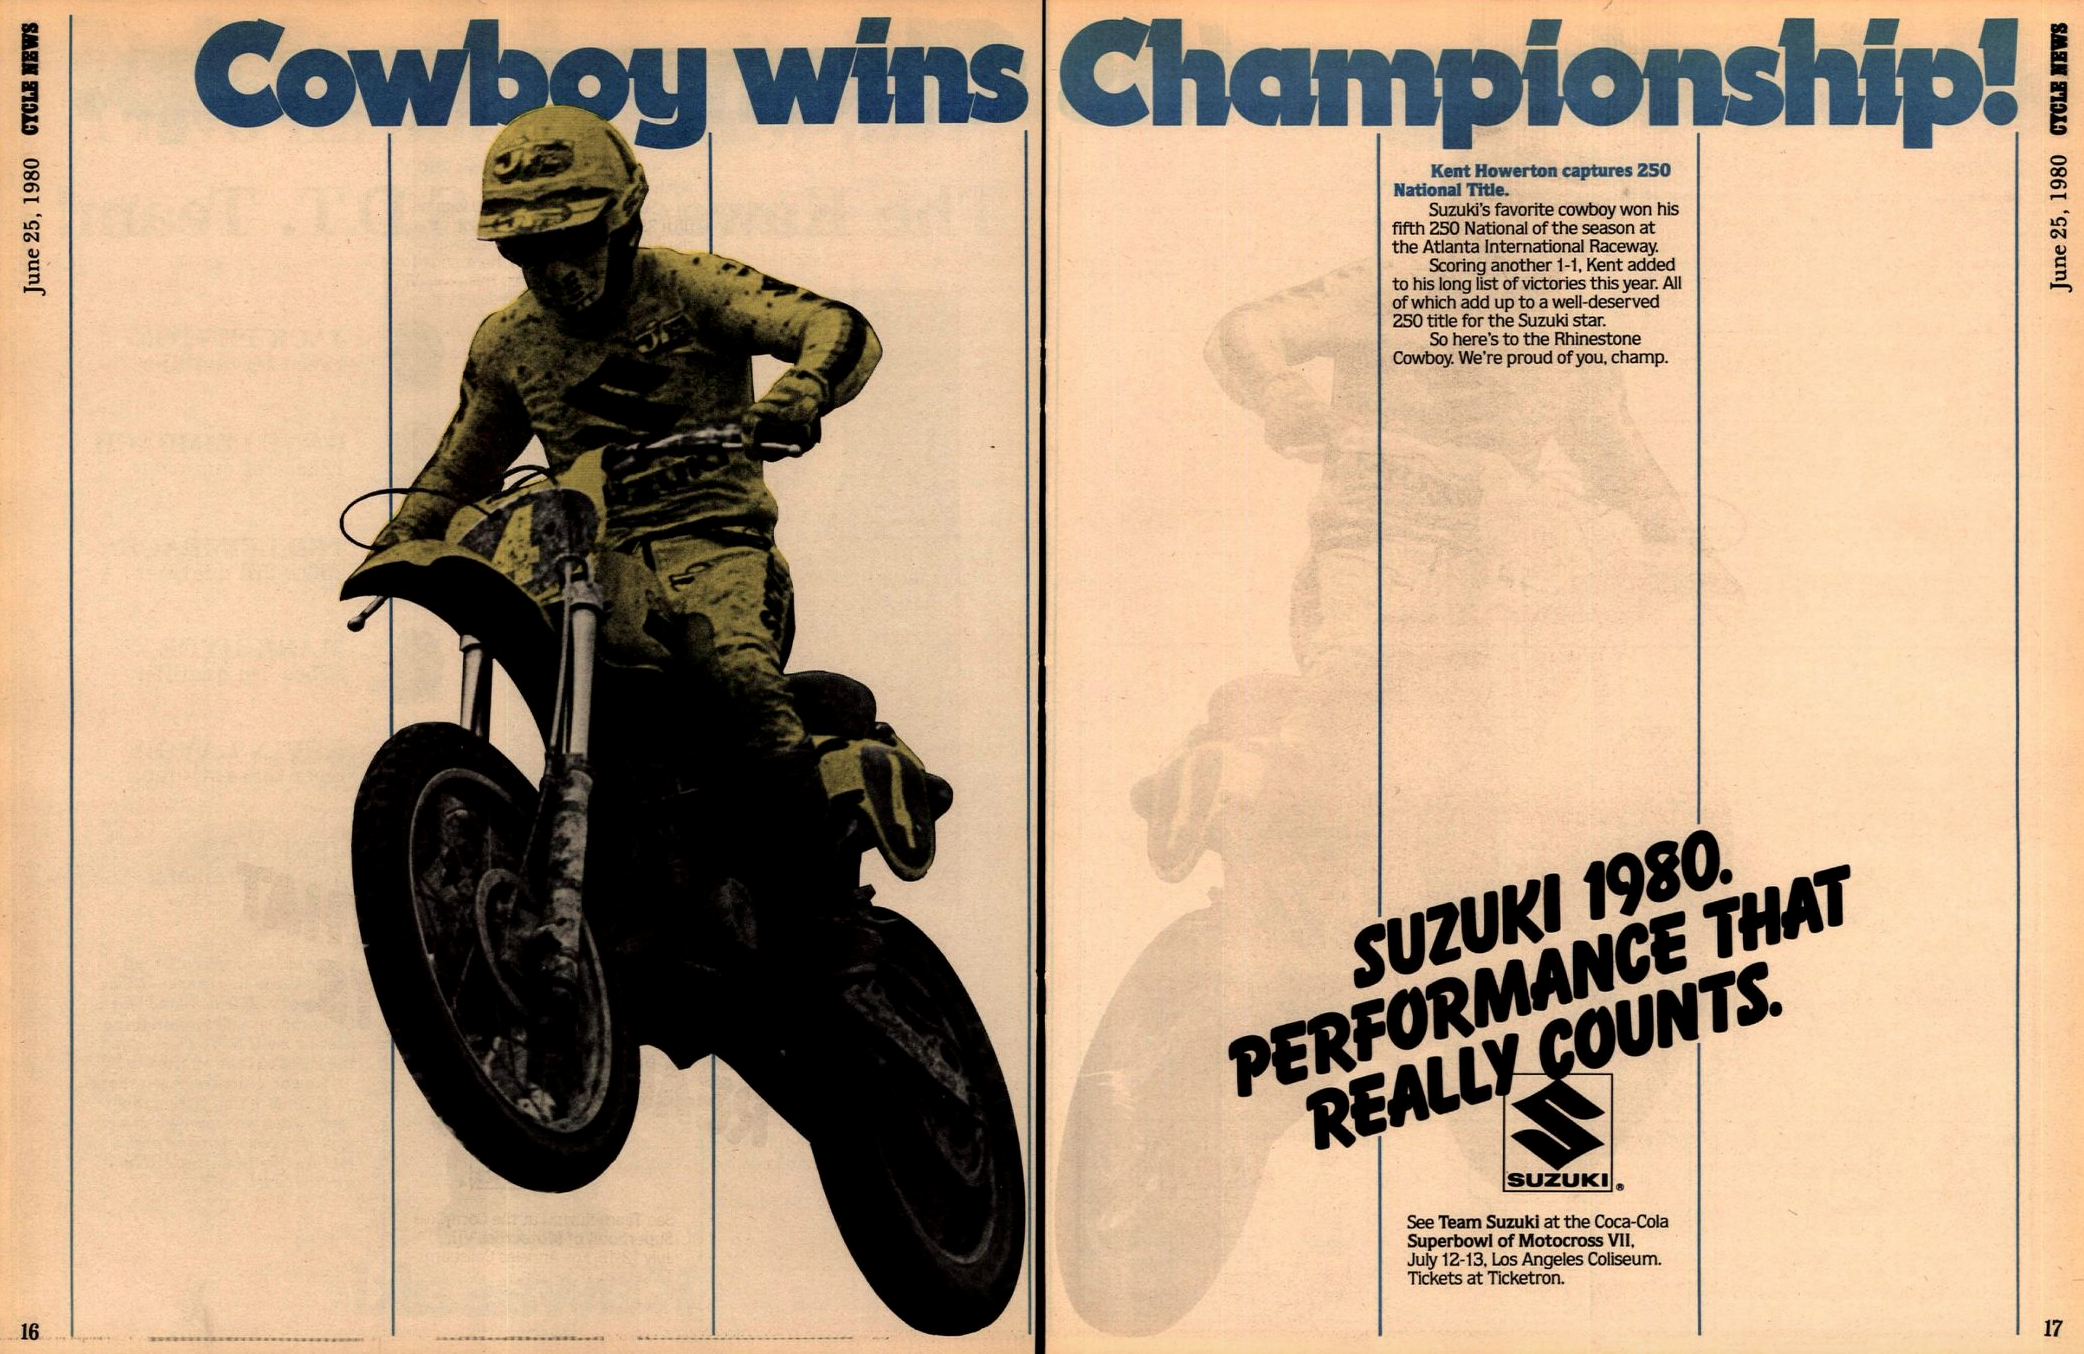 With his win, Howerton clinched the 250 AMA National Championship, his second career title and first on a Suzuki.